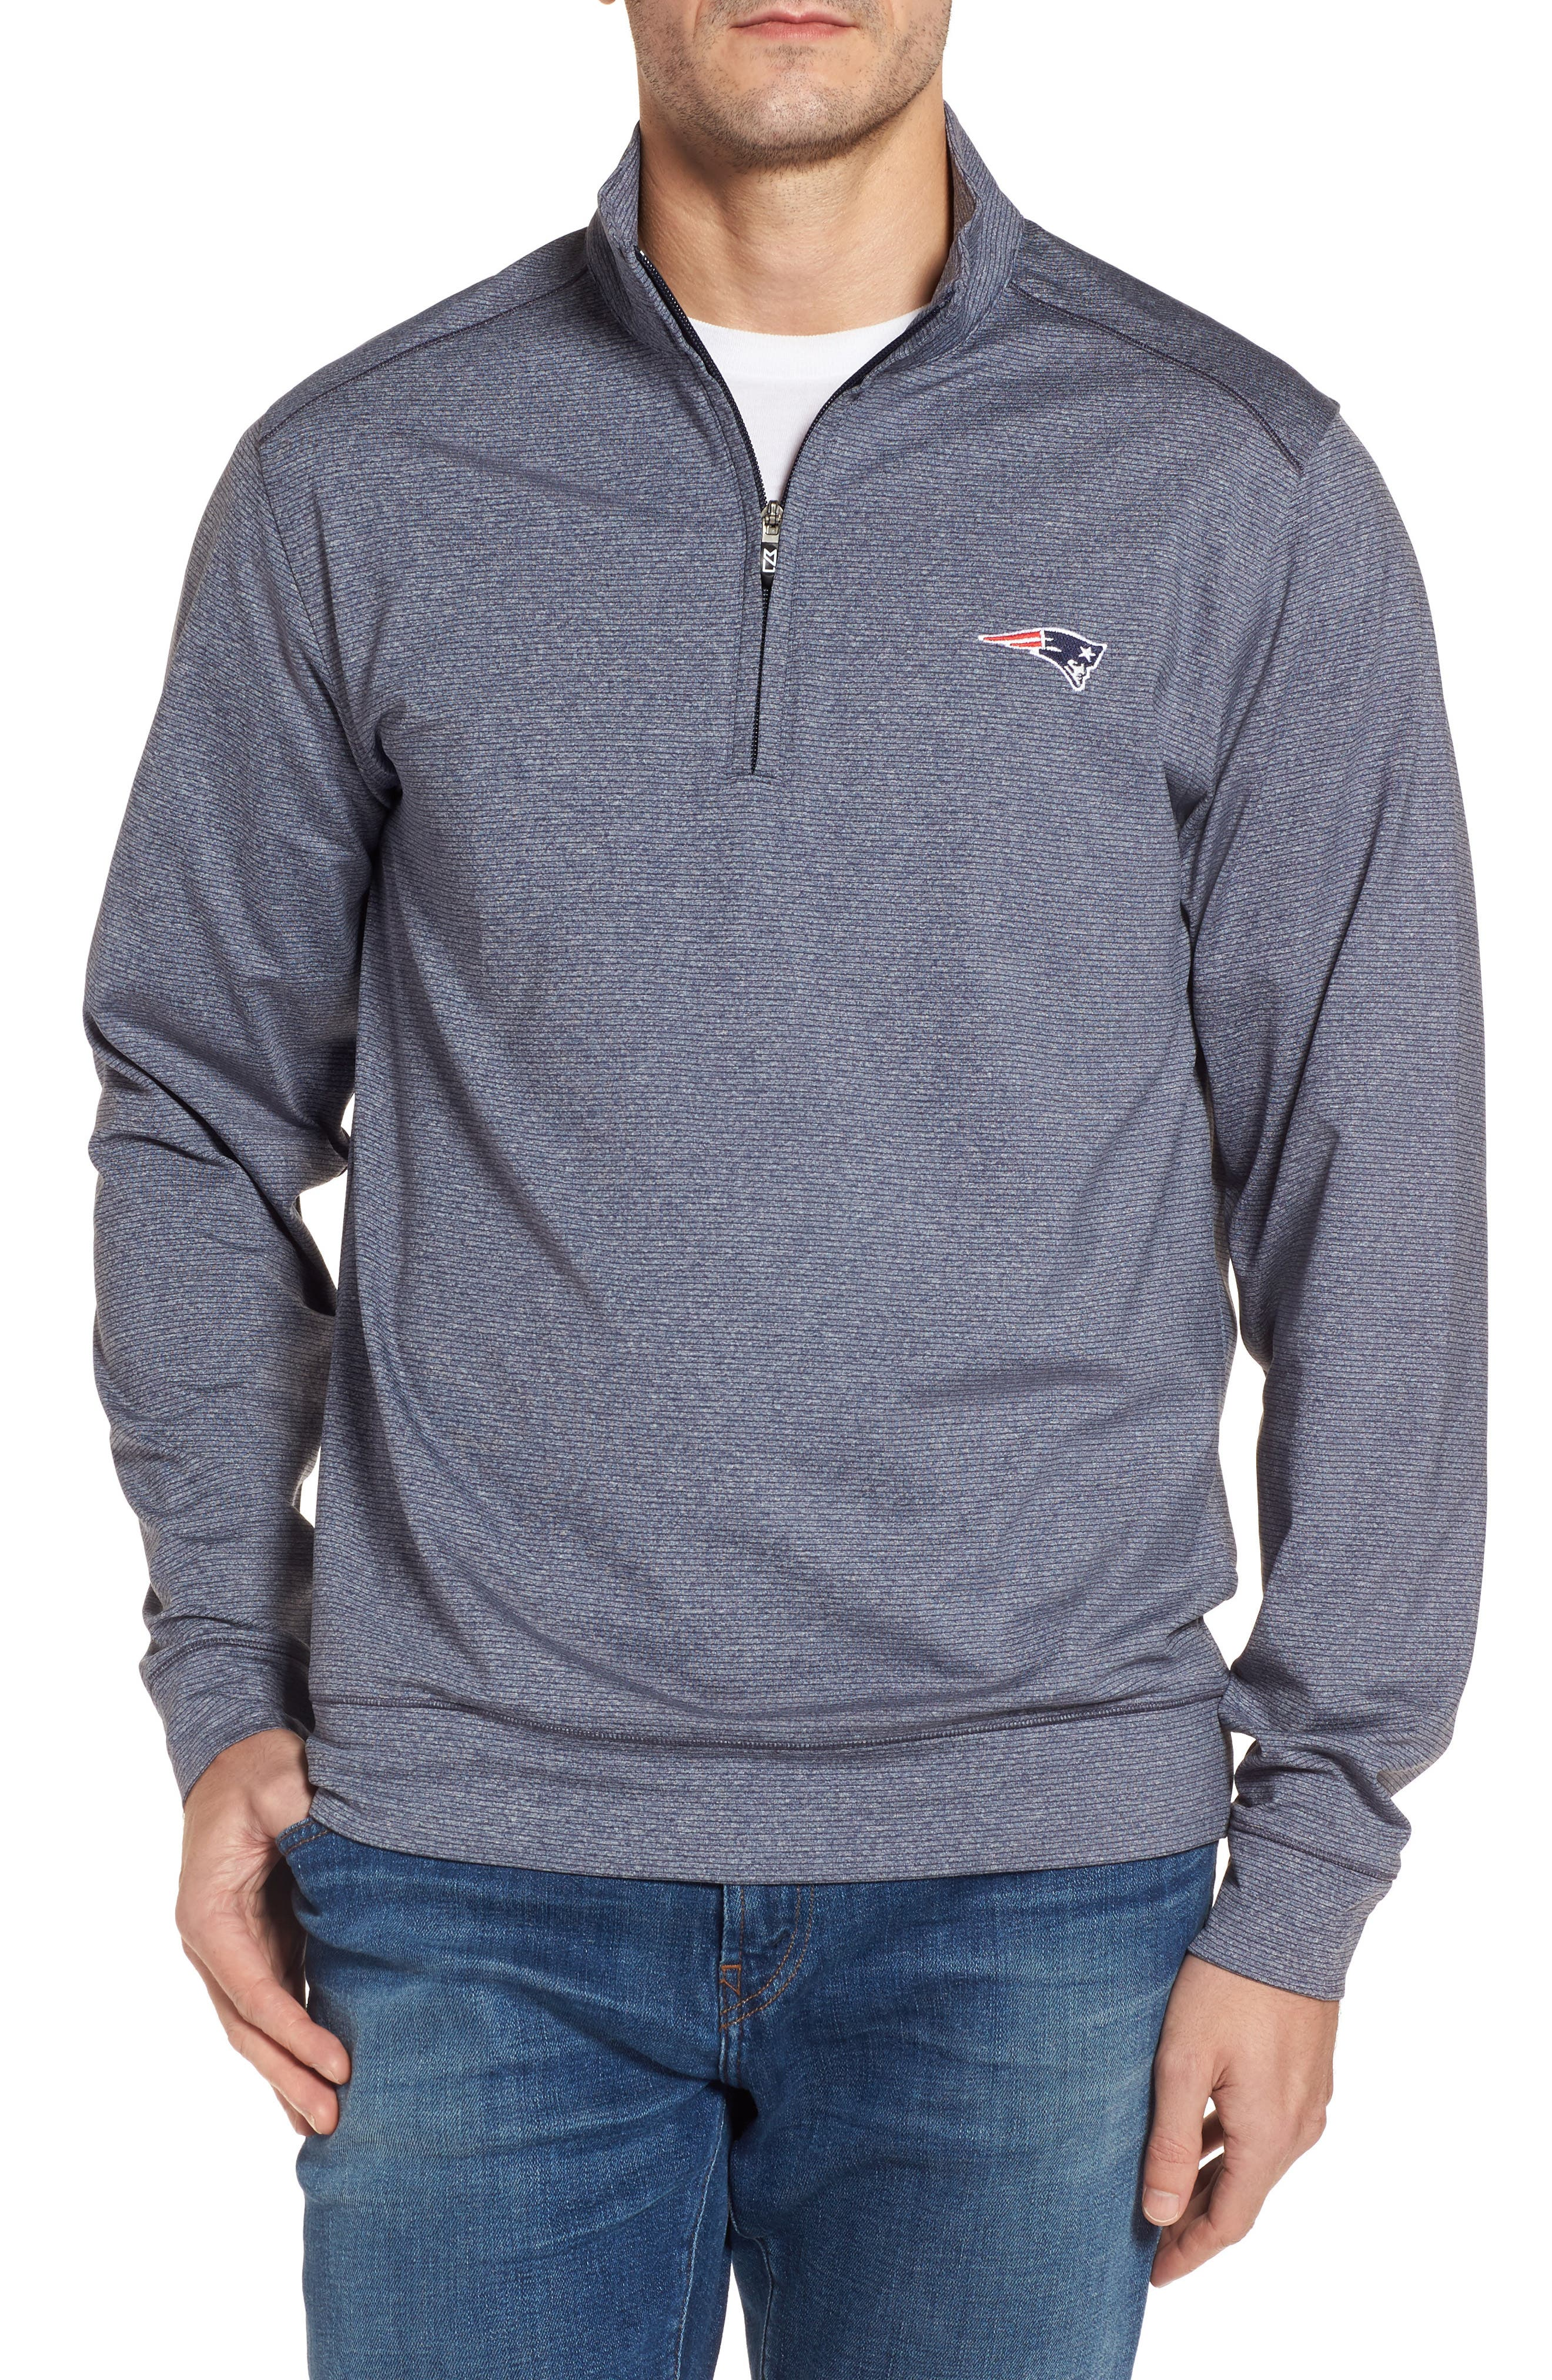 Shoreline - New England Patriots Half Zip Pullover,                         Main,                         color, 976